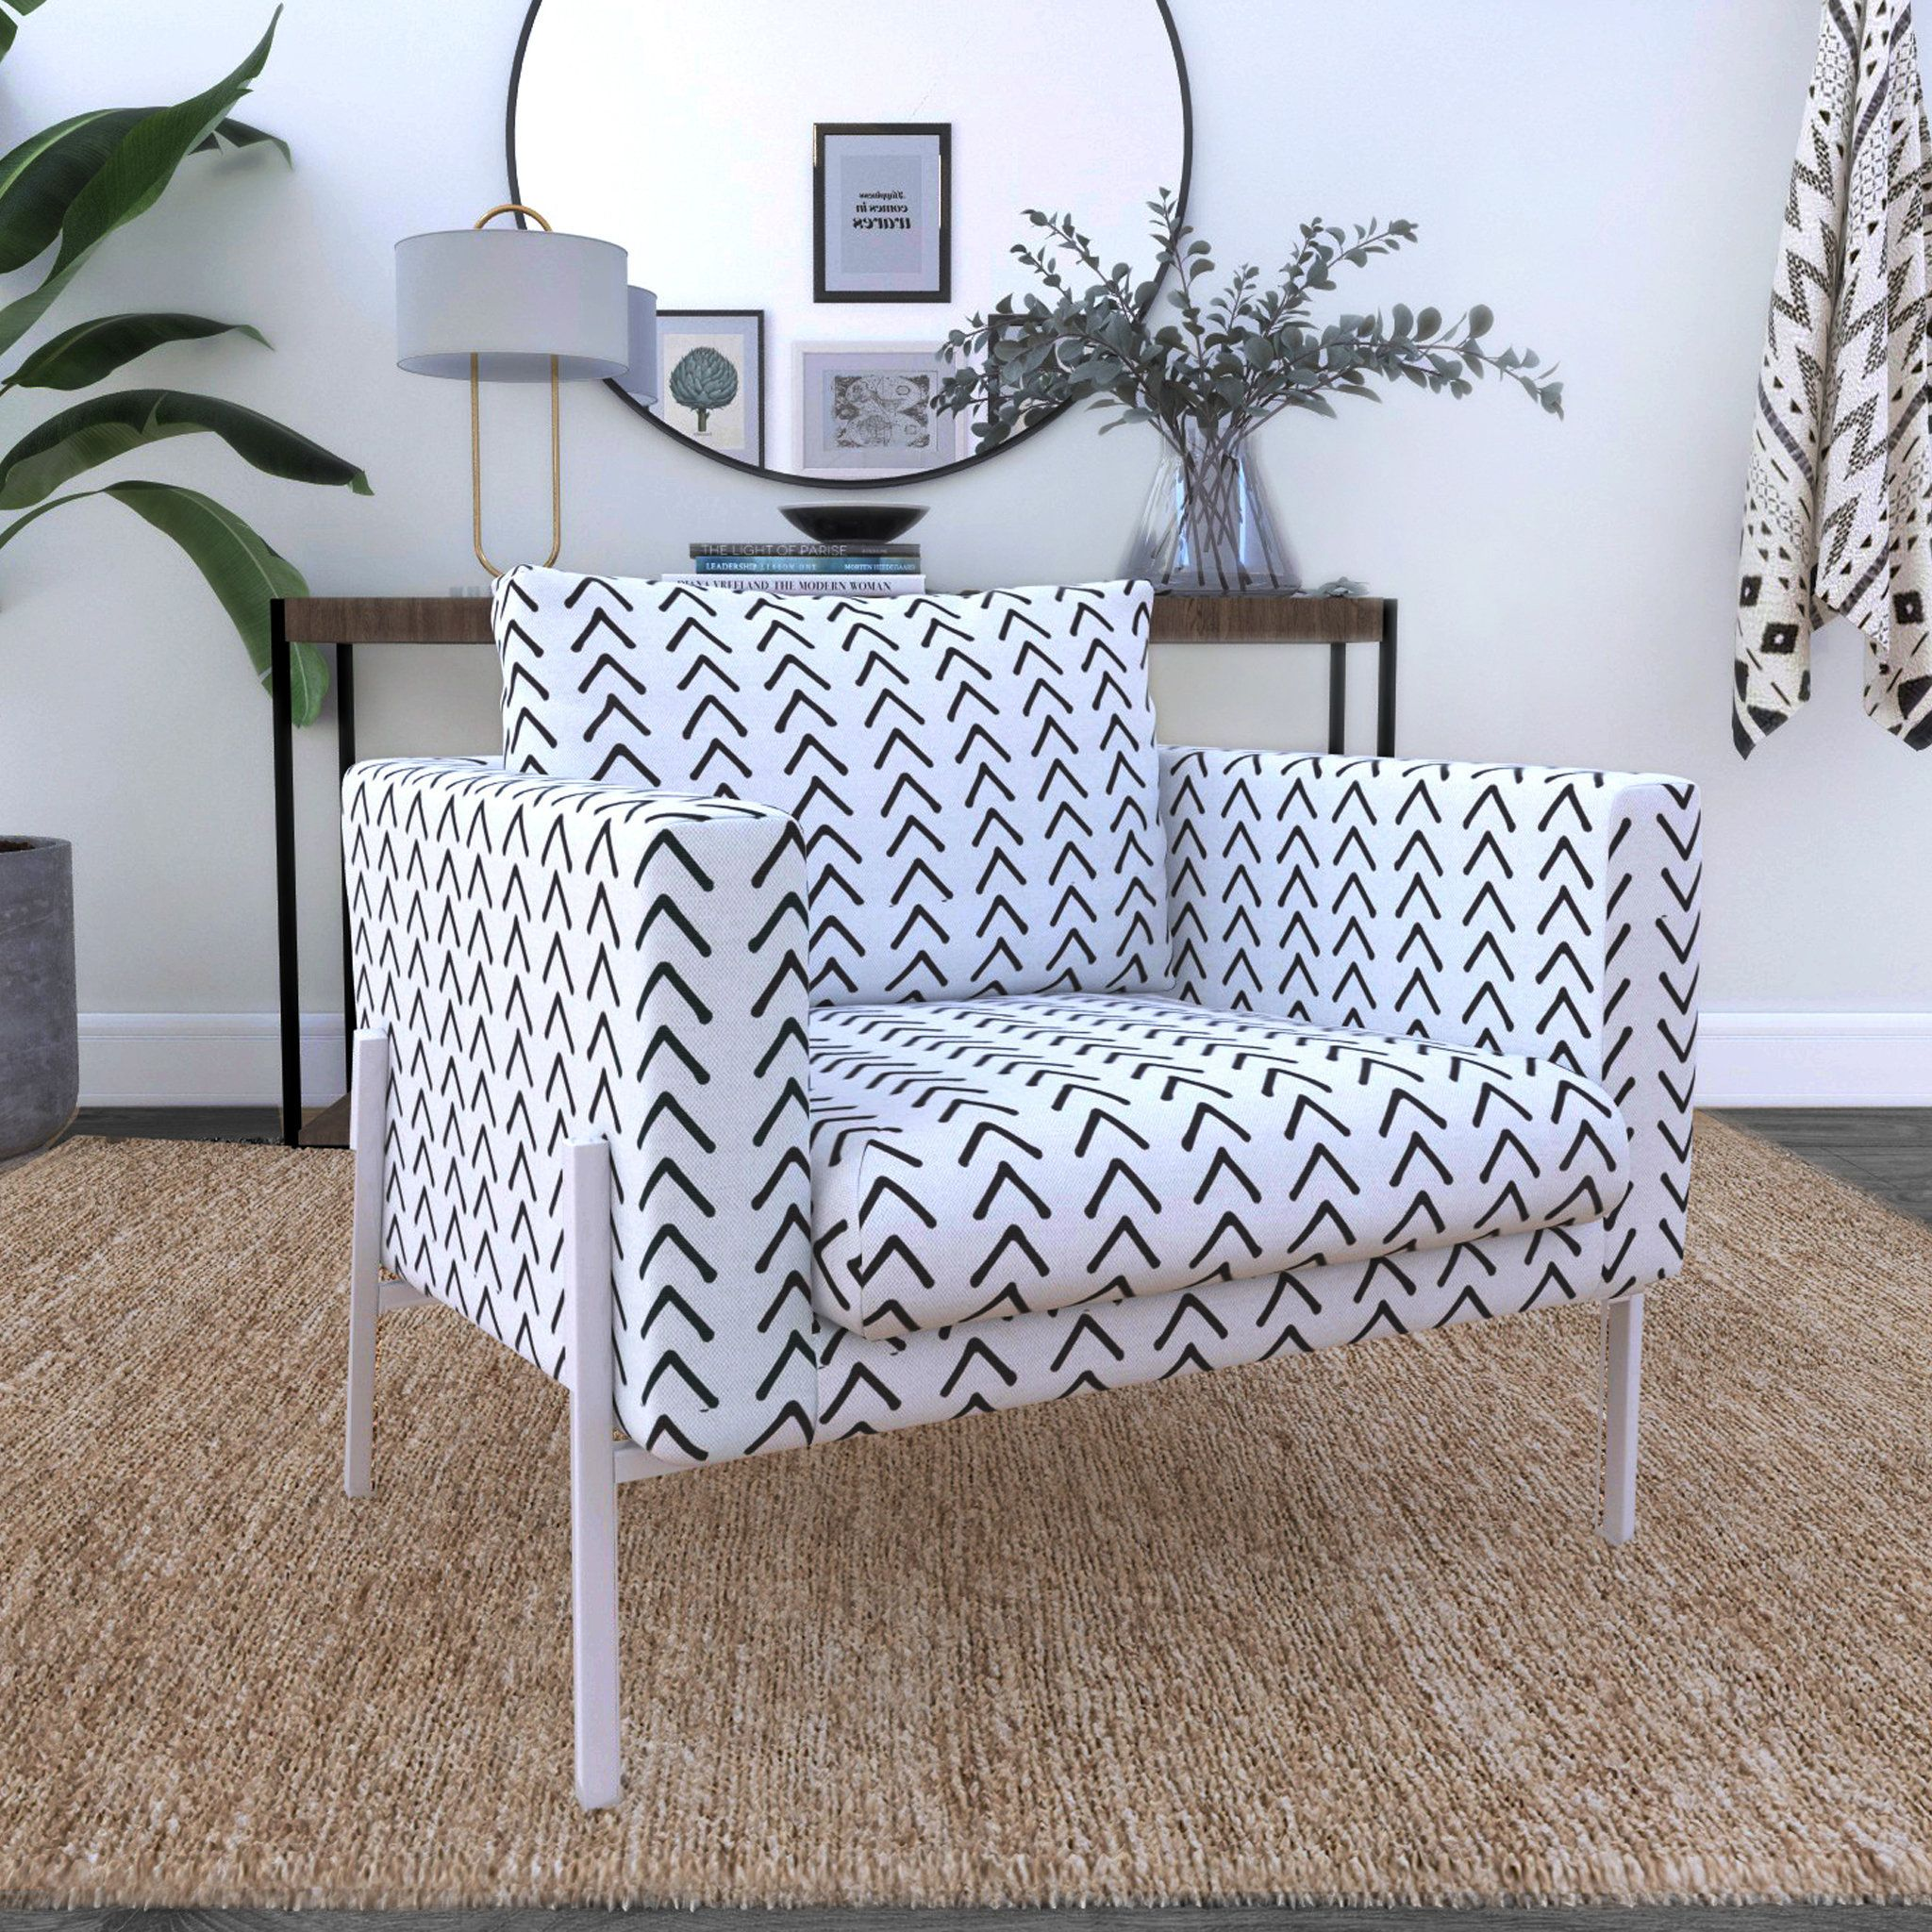 IKEA KOARP Armchair Covers, Arrows Tribal Print, African